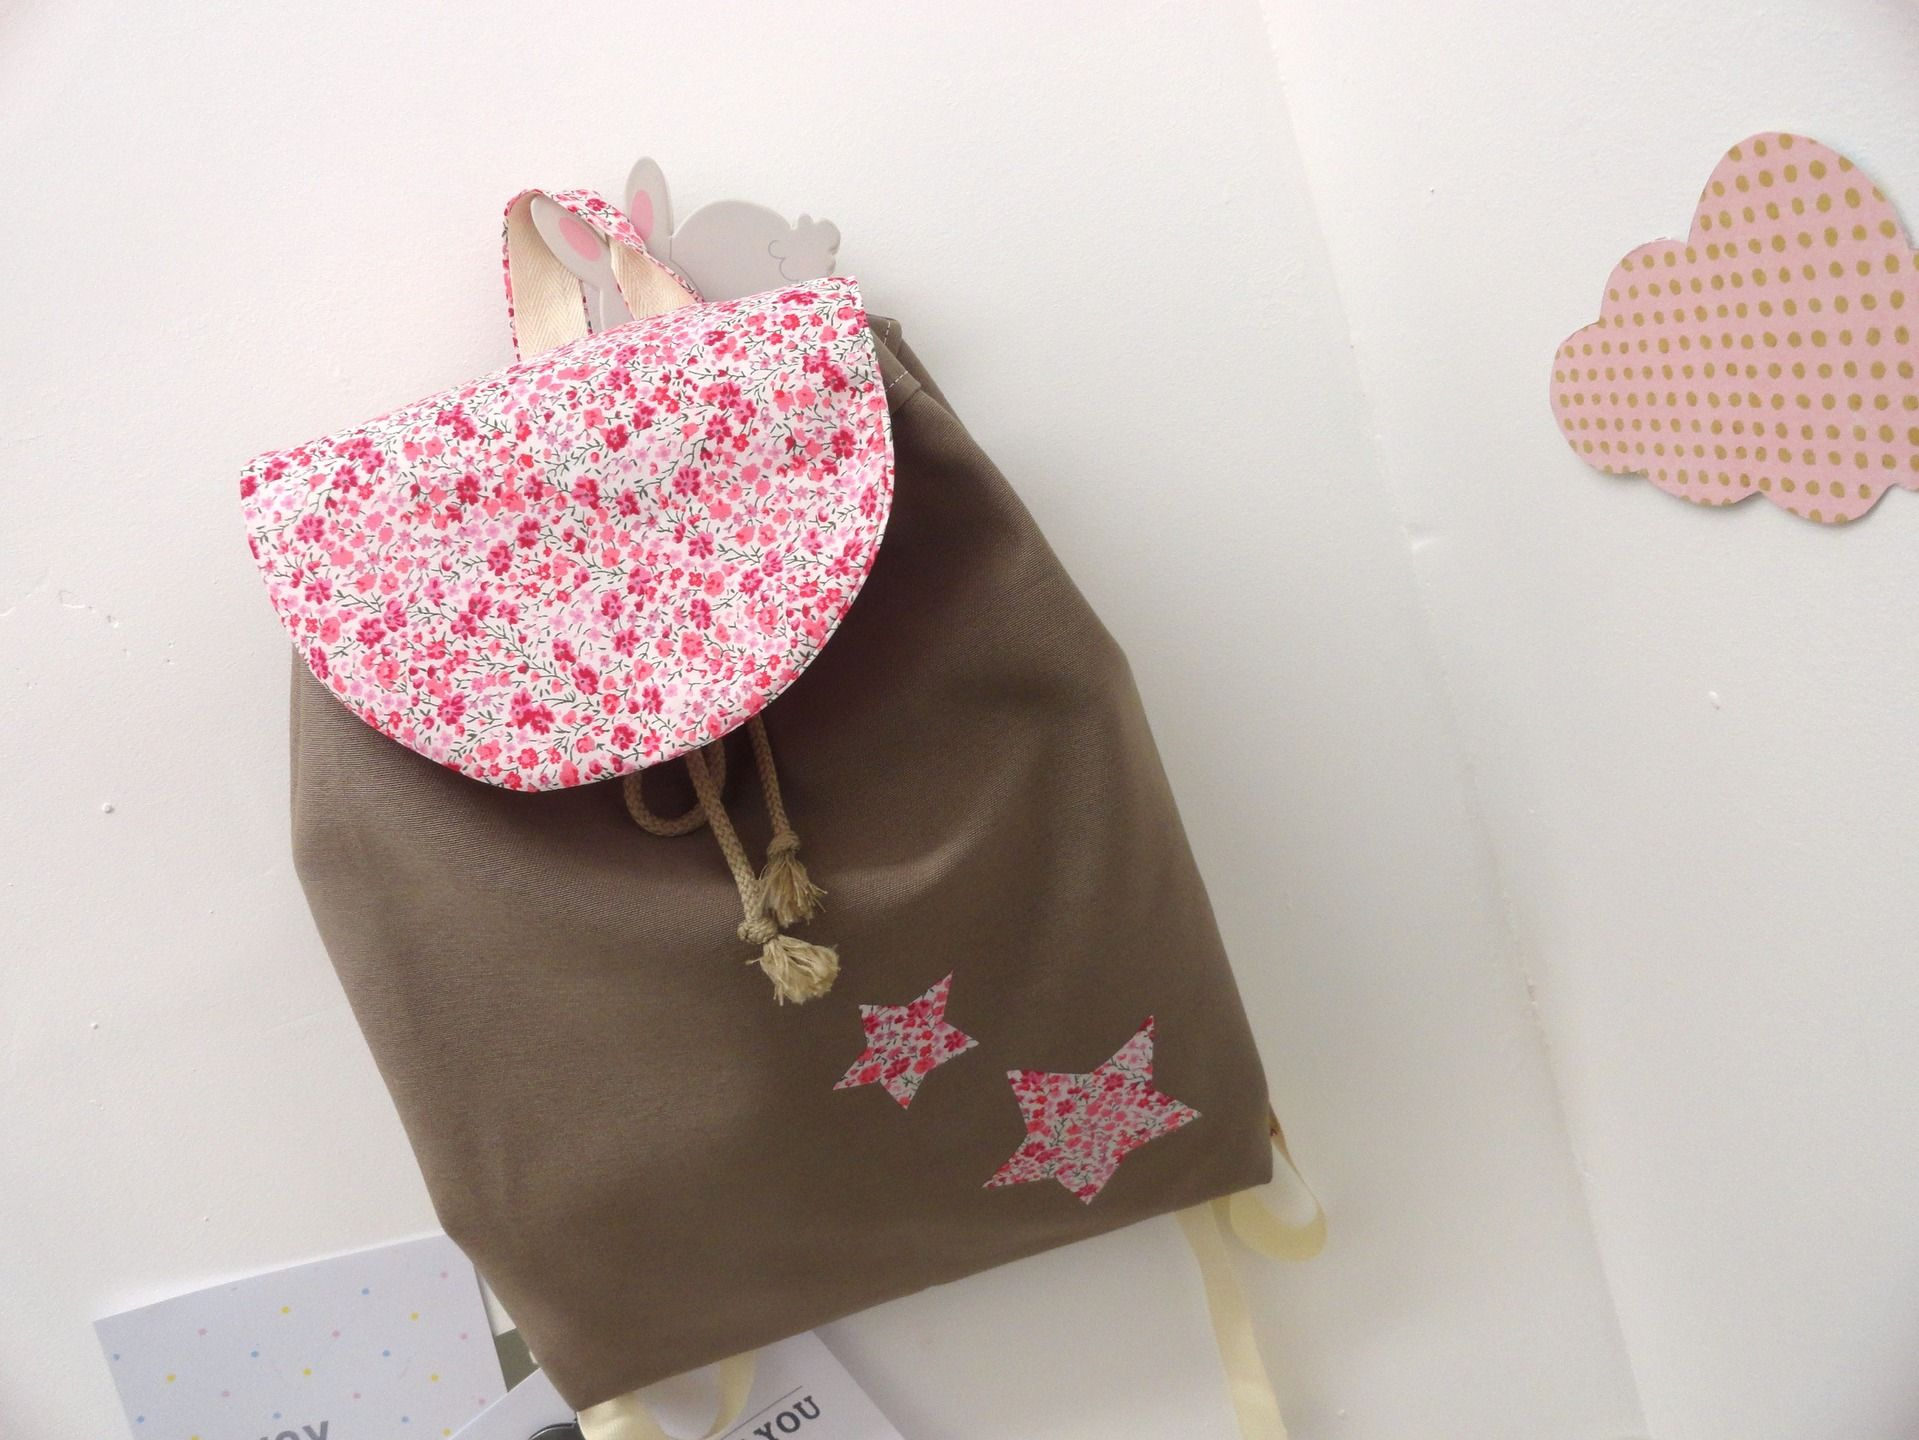 Sac dos fille liberty phoebe rose taupe sur commande for Malette couture pour fille